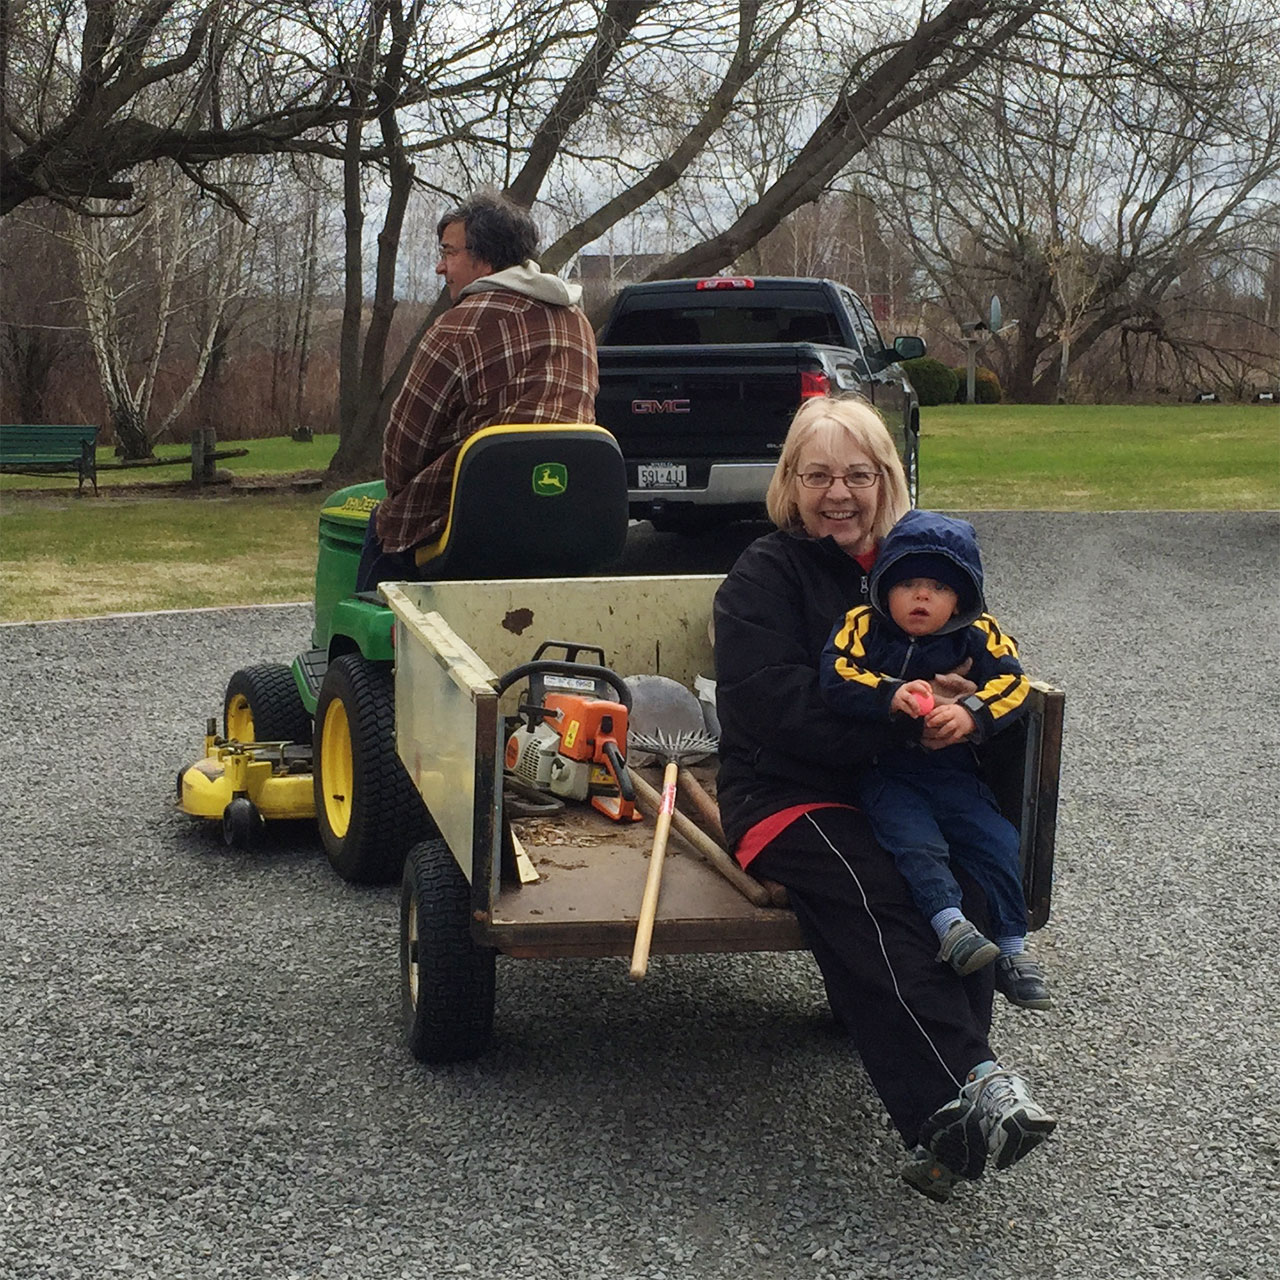 Boo gets a ride in the trailer with Nana